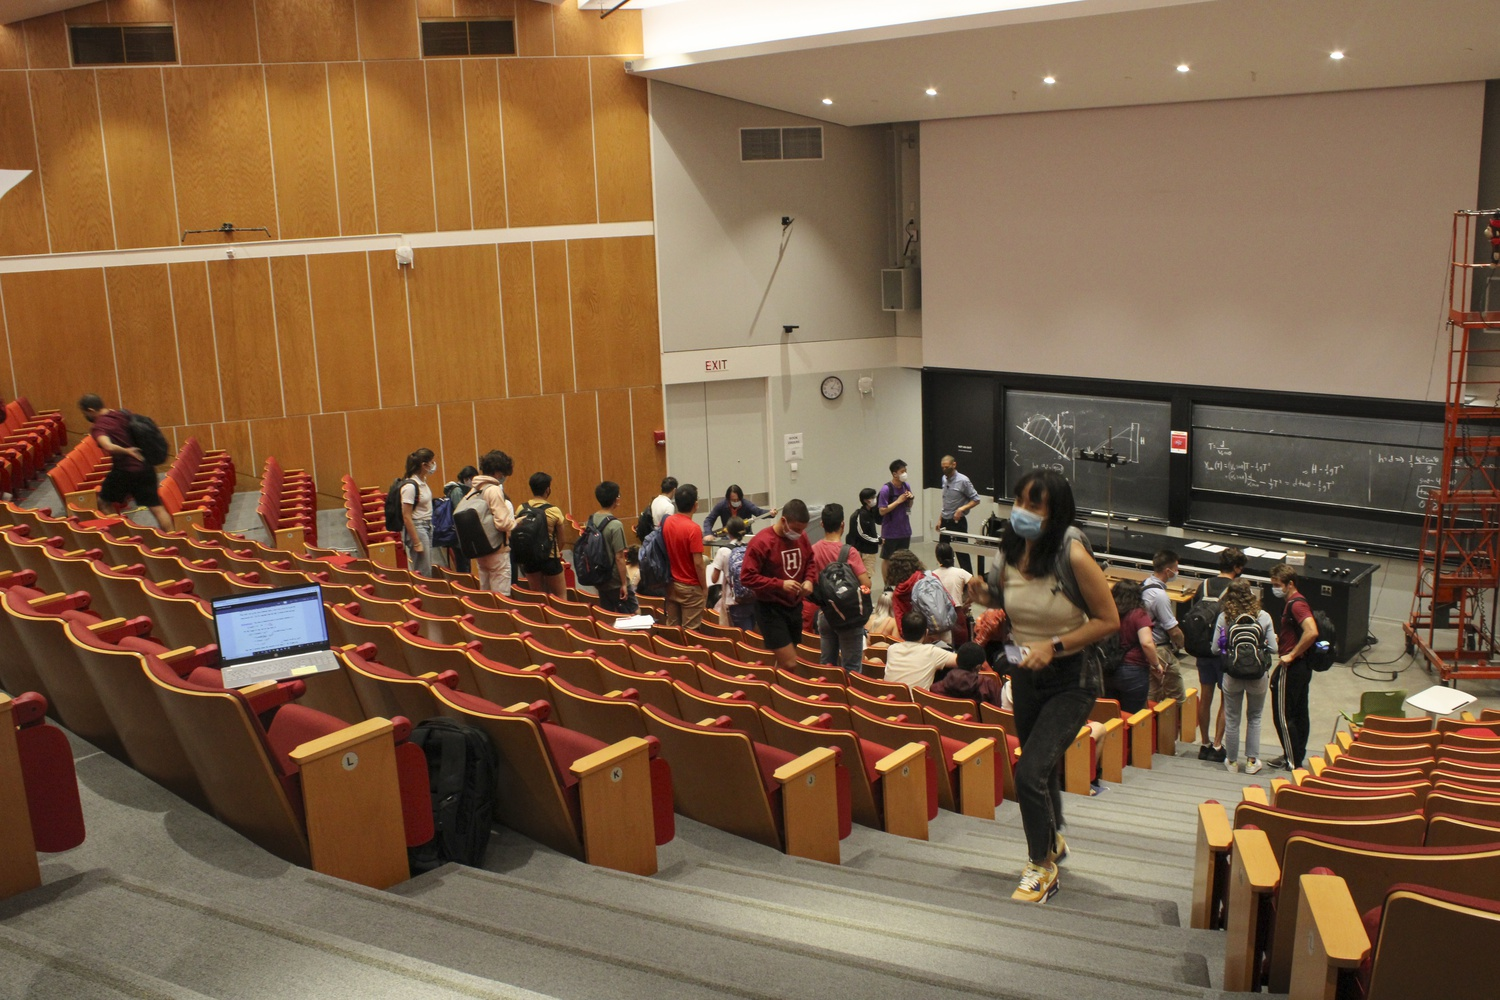 Students pack up at the end of lecture for Phys-Sci 2 in the Science Center.